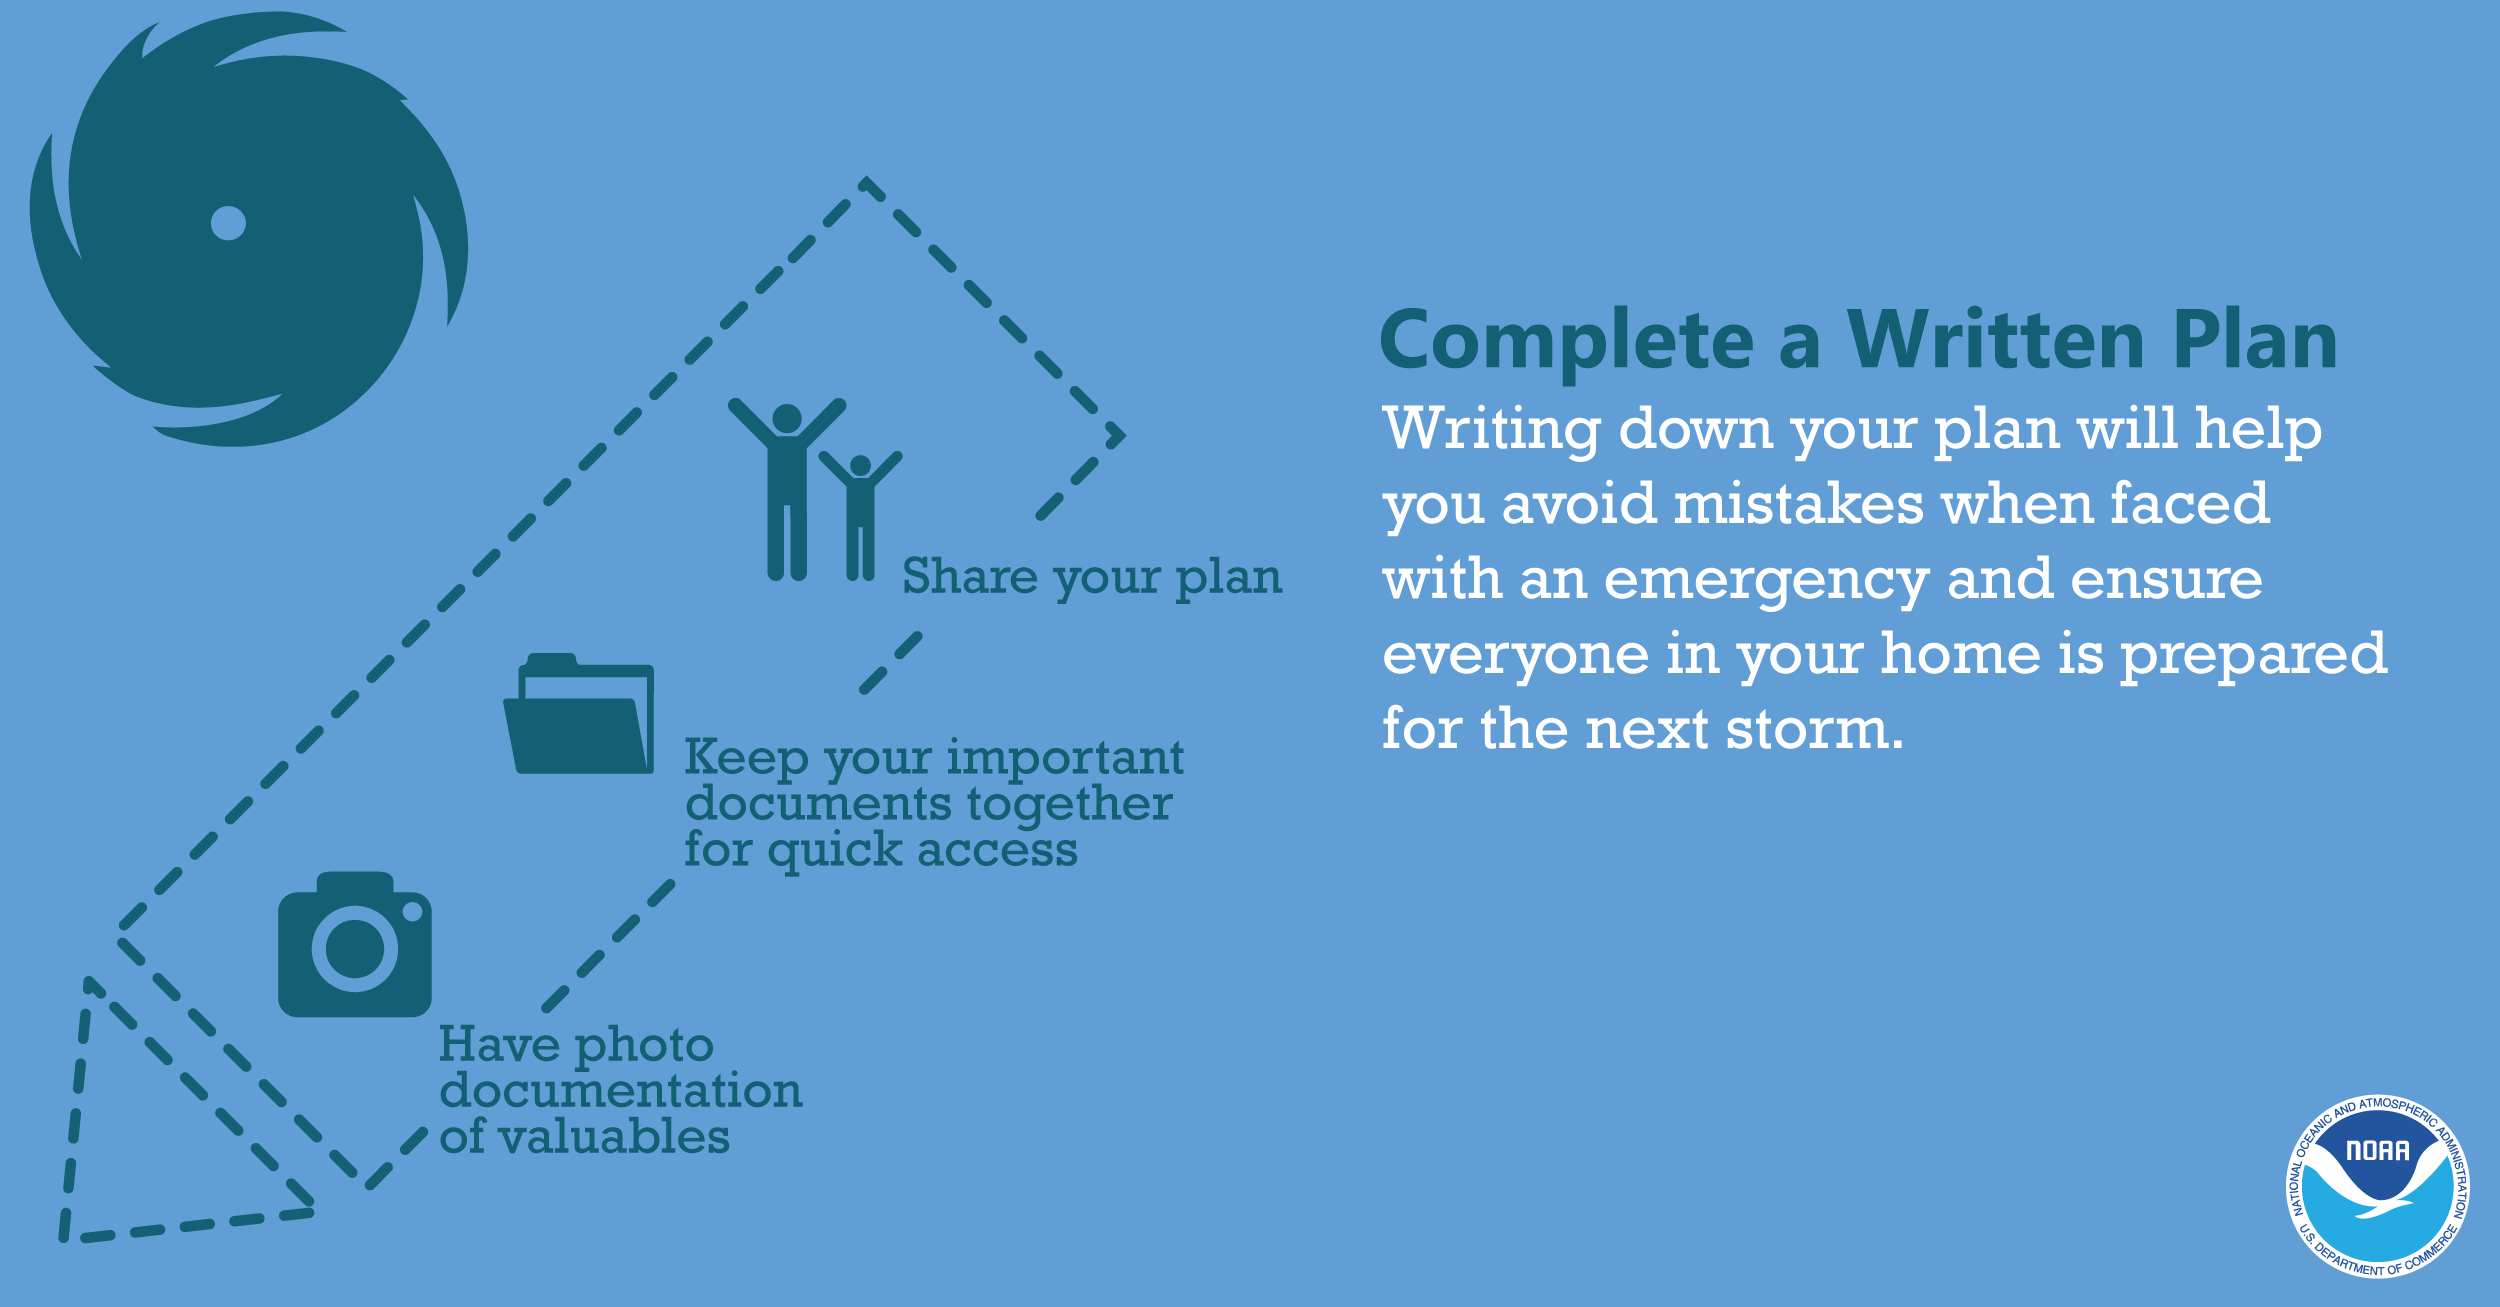 Complete a Written Plan: Writing down your plan will help you avoid mistakes when faced with an emergency and ensure everyone in your home is prepared for the next storm.